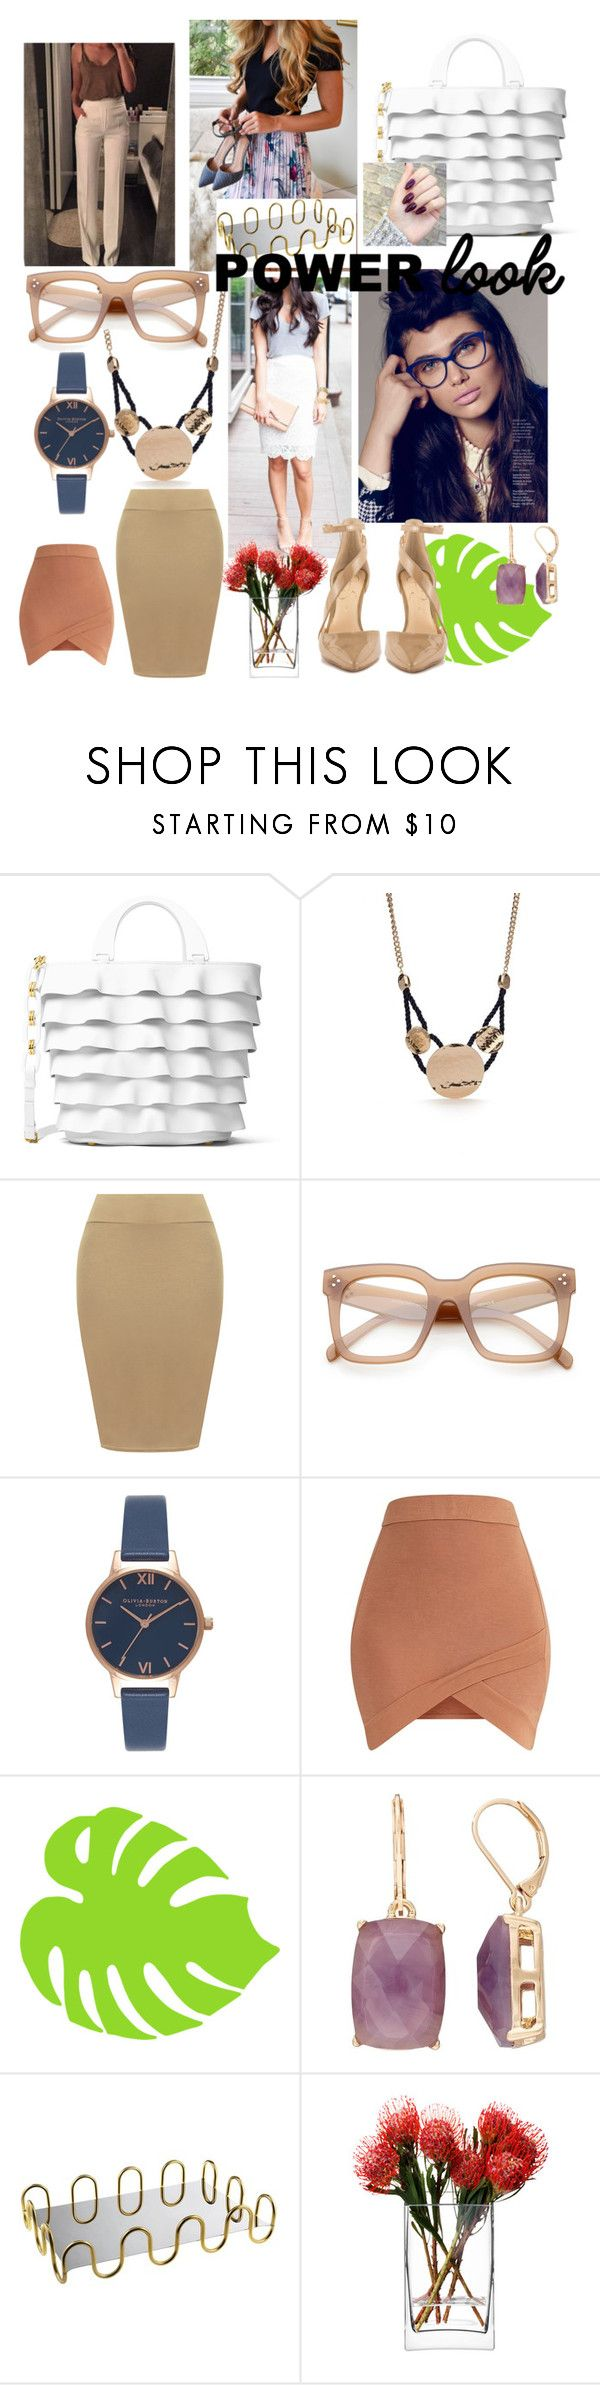 """BossBabe"" by itsshayplay ❤ liked on Polyvore featuring Michael Kors, New Directions, WearAll, ZeroUV, Olivia Burton, Dana Buchman, Sambonet, LSA International and Jessica Simpson"